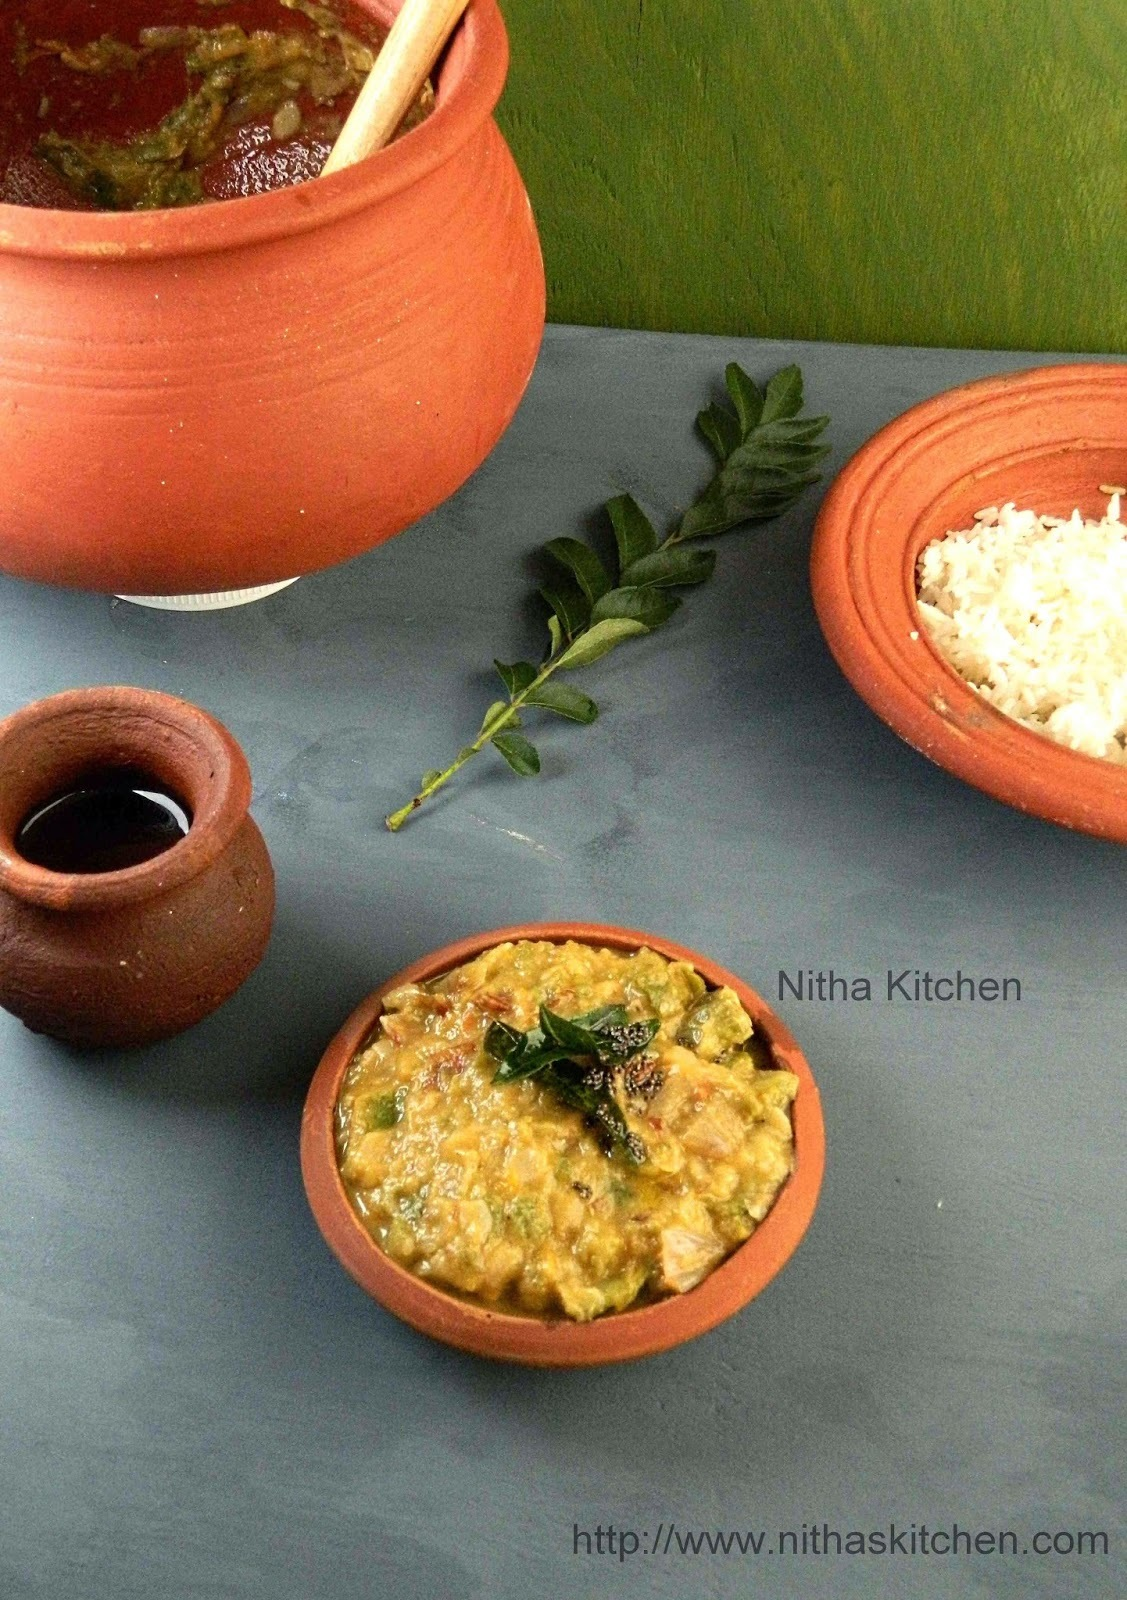 Peerkangai Kadaisal | Ridge Gourd Masiyal | My Grandma's Signature Recipe using Mud Pot